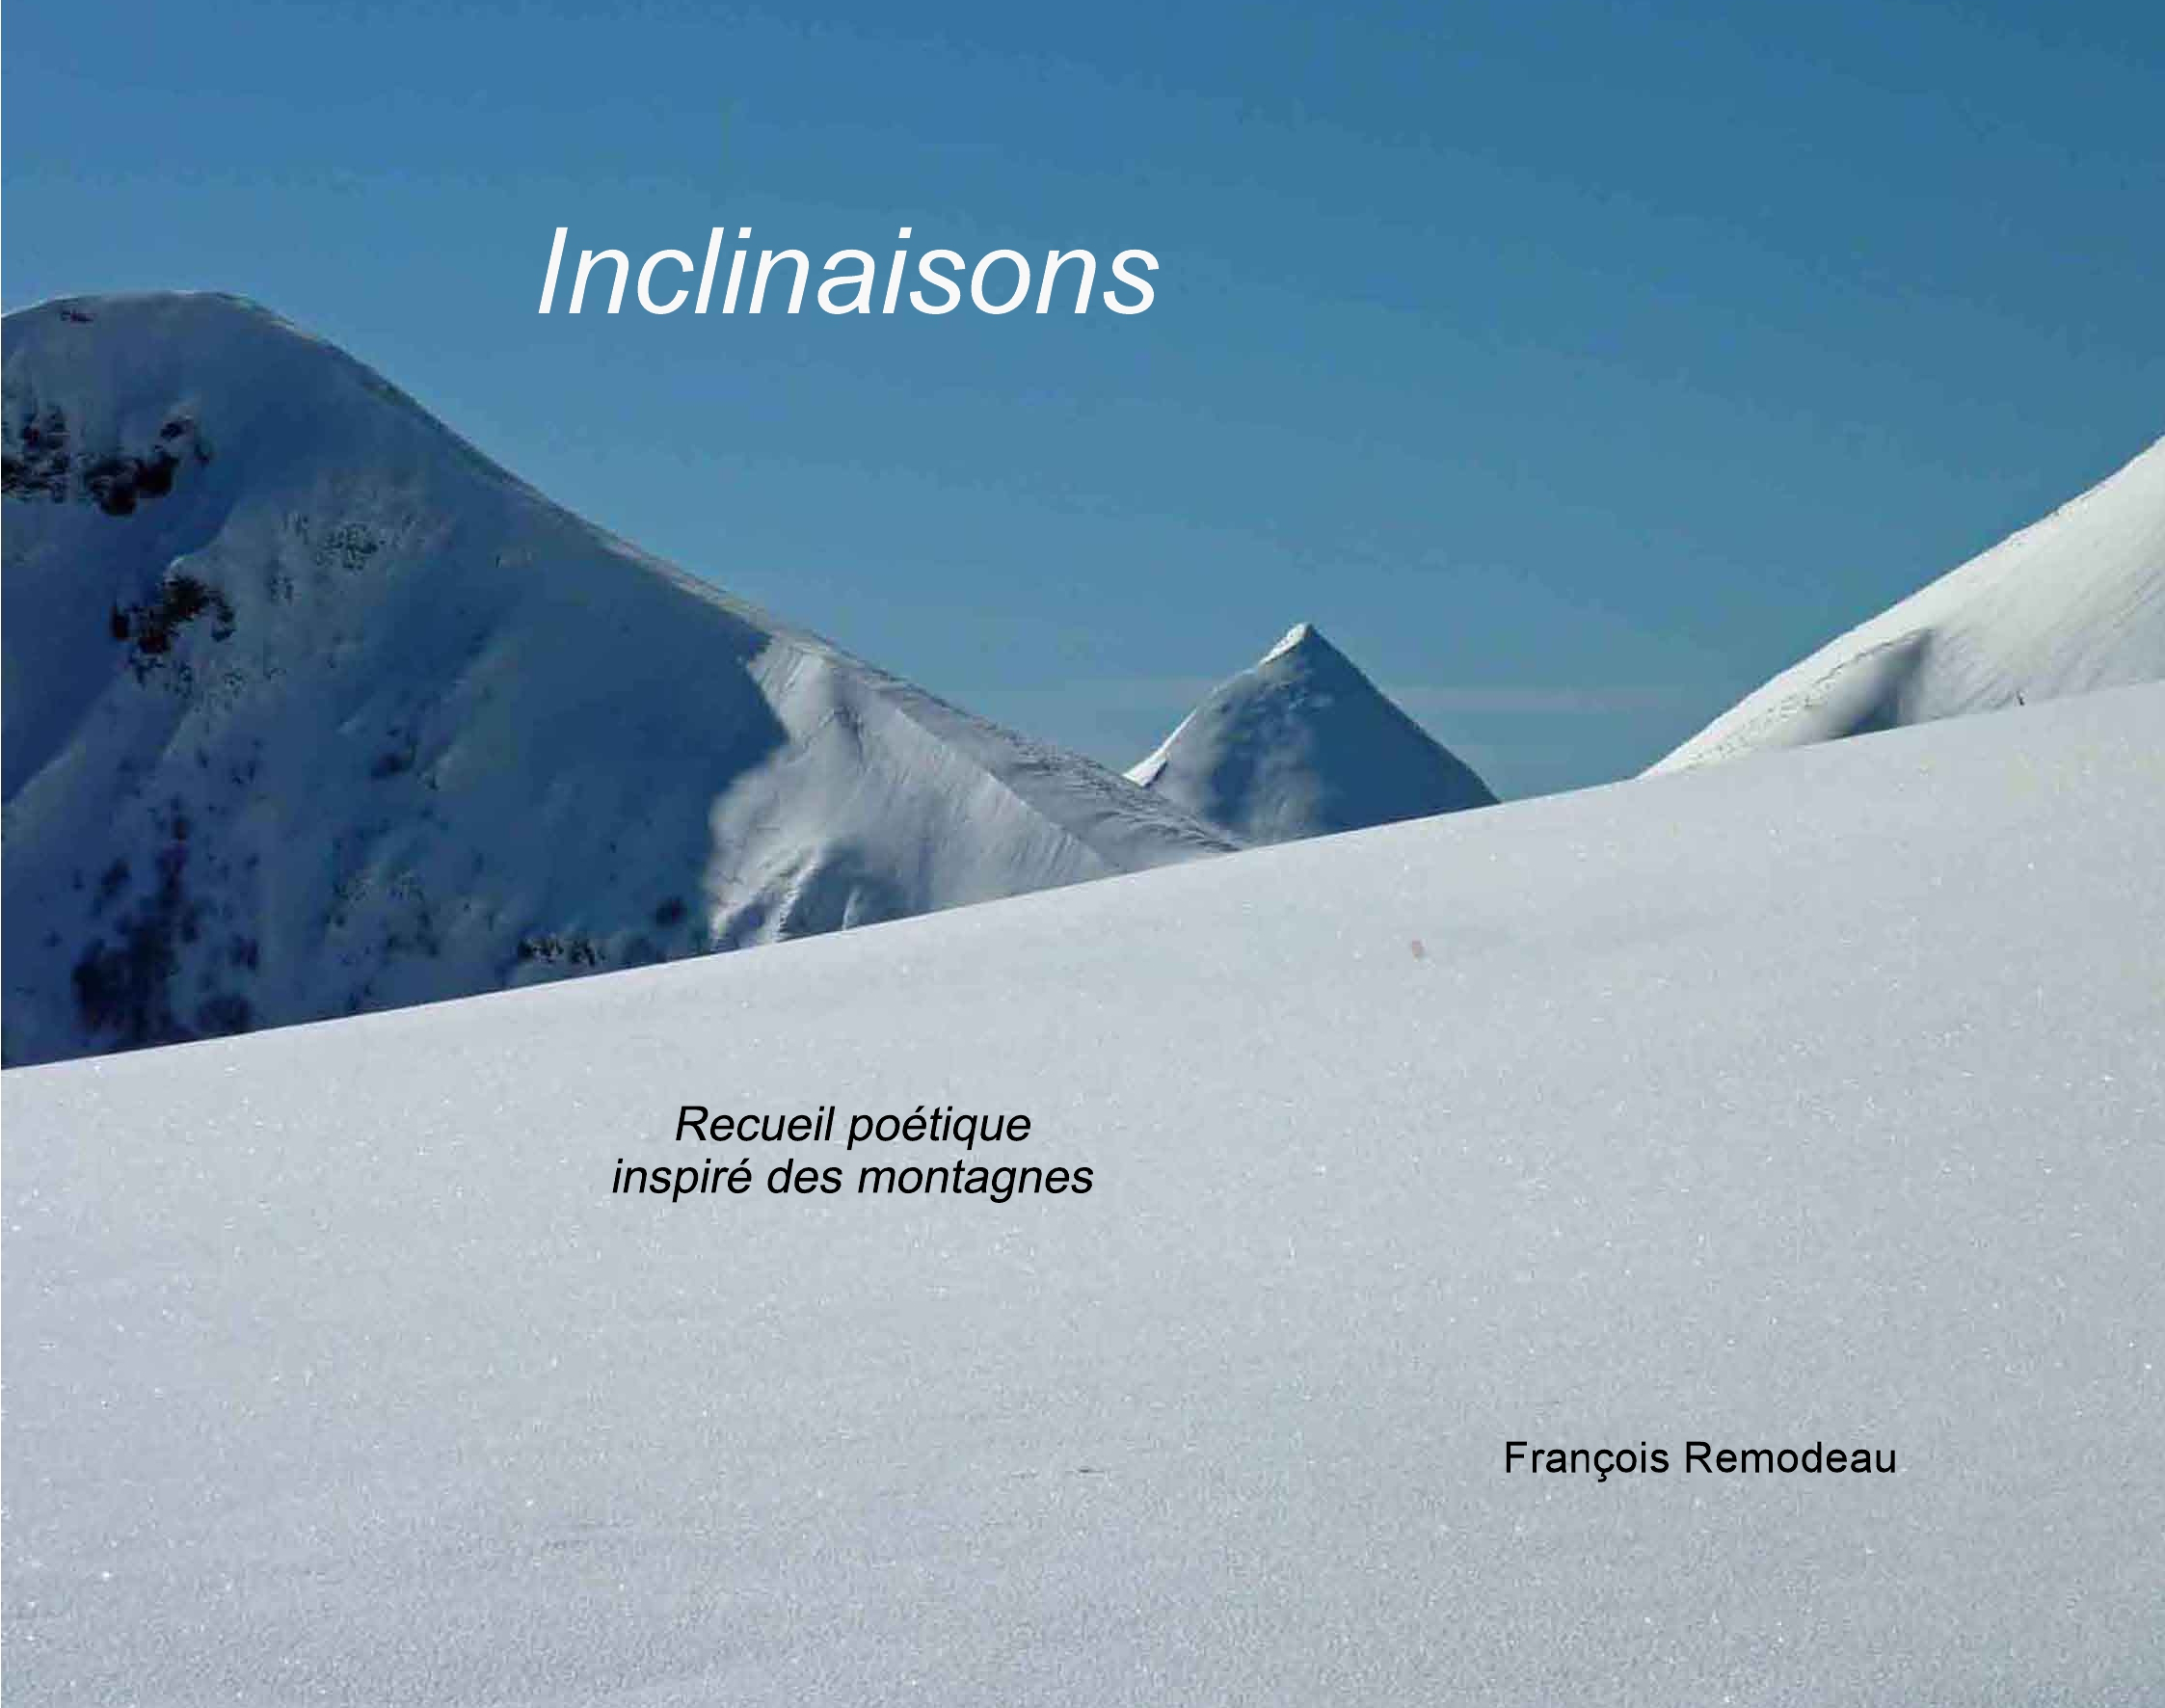 Inclinaisons